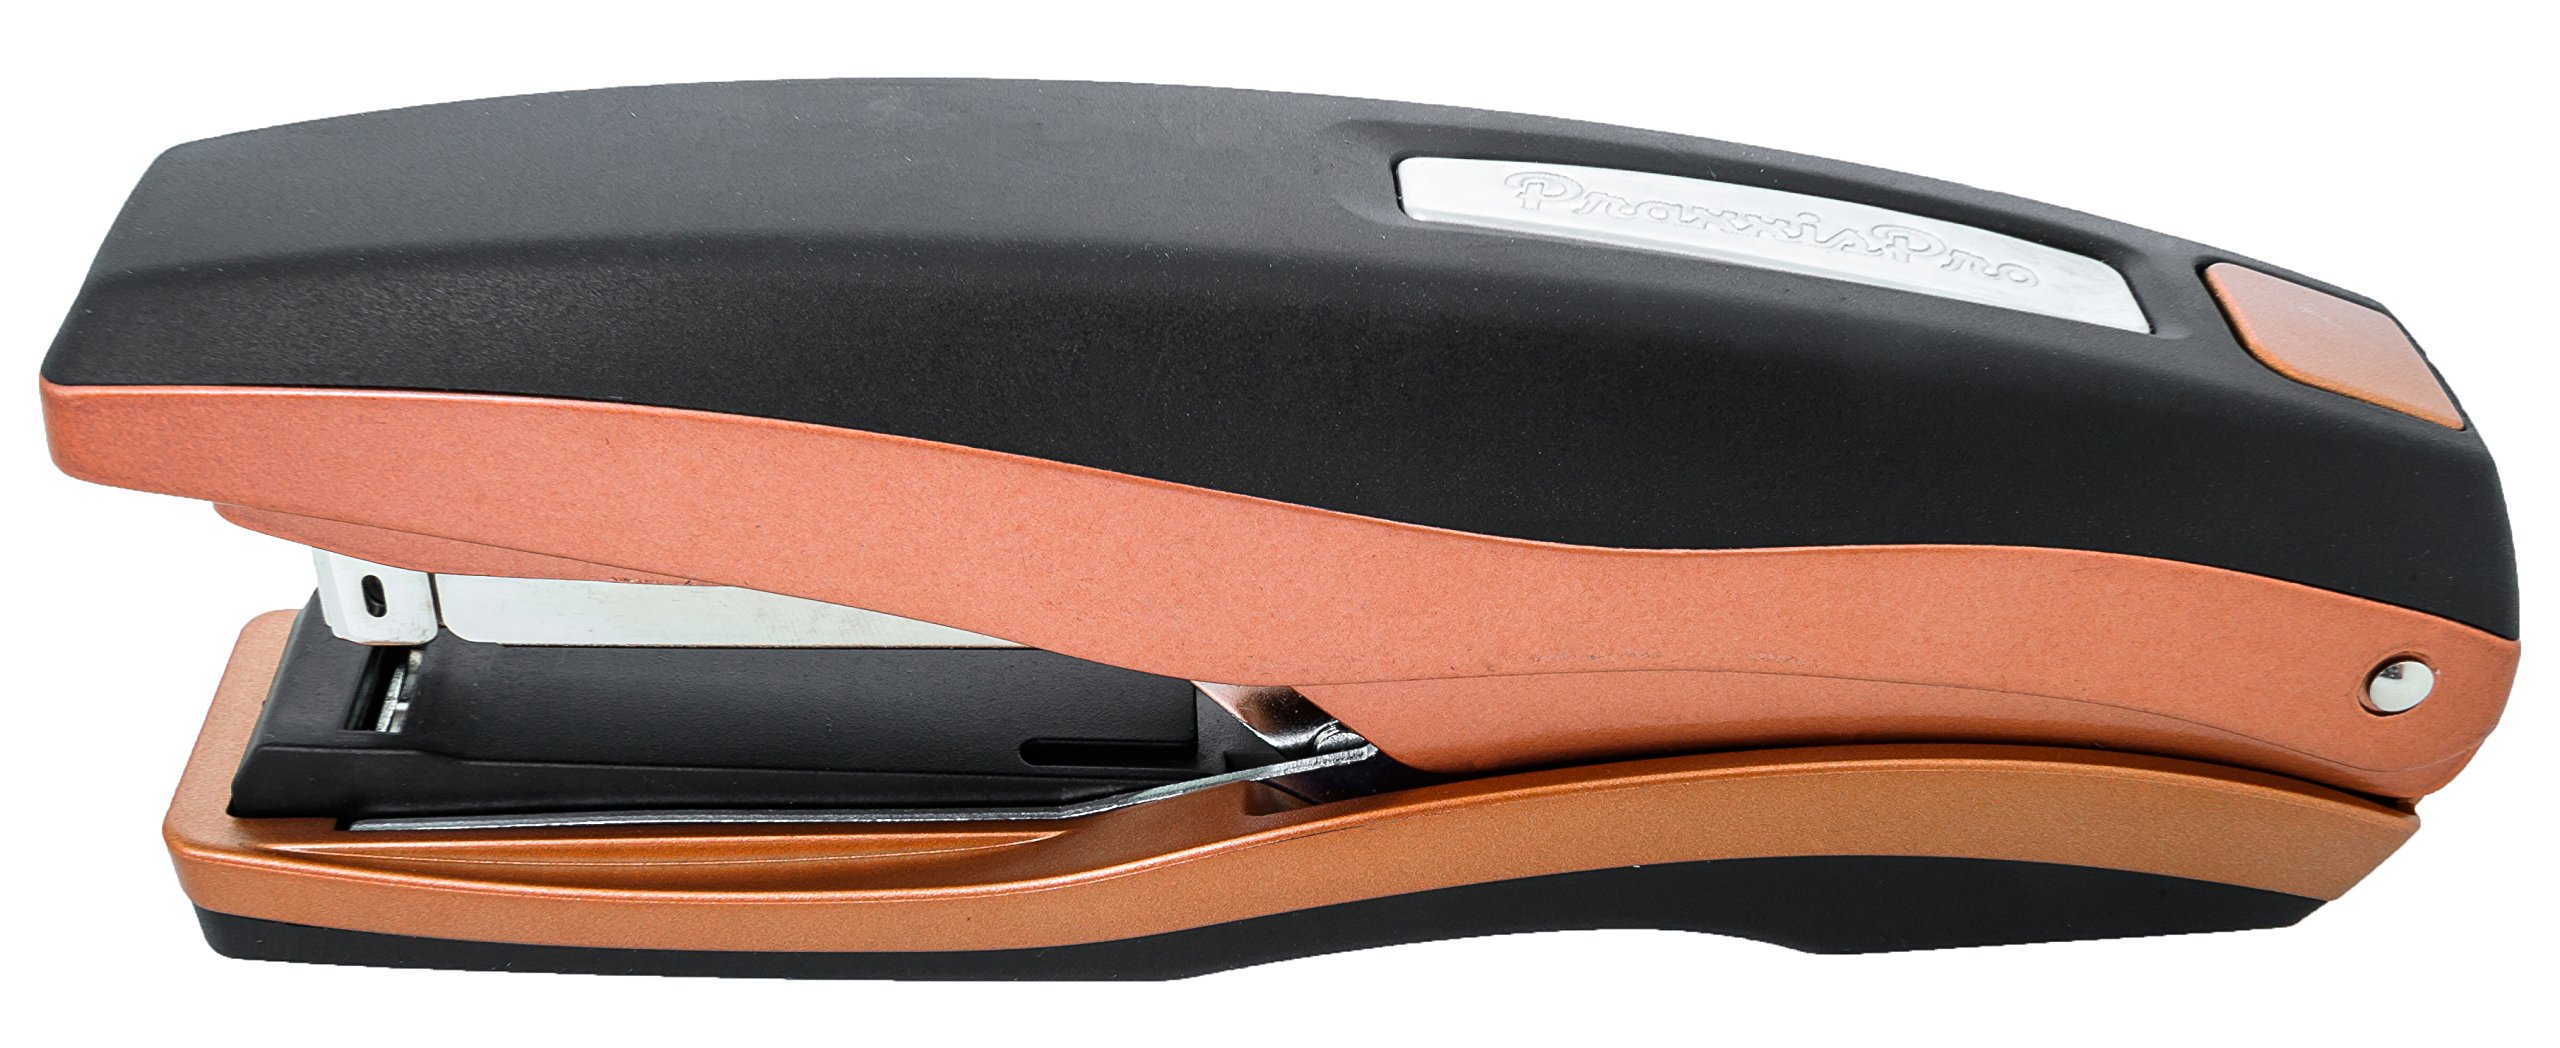 PraxxisPro, Heavy Duty Flat-Clinch Stapler - Staples 2 to 40 Sheets, Reliable Stapling Every Time, Zinc Construction (Copper-Metallic)